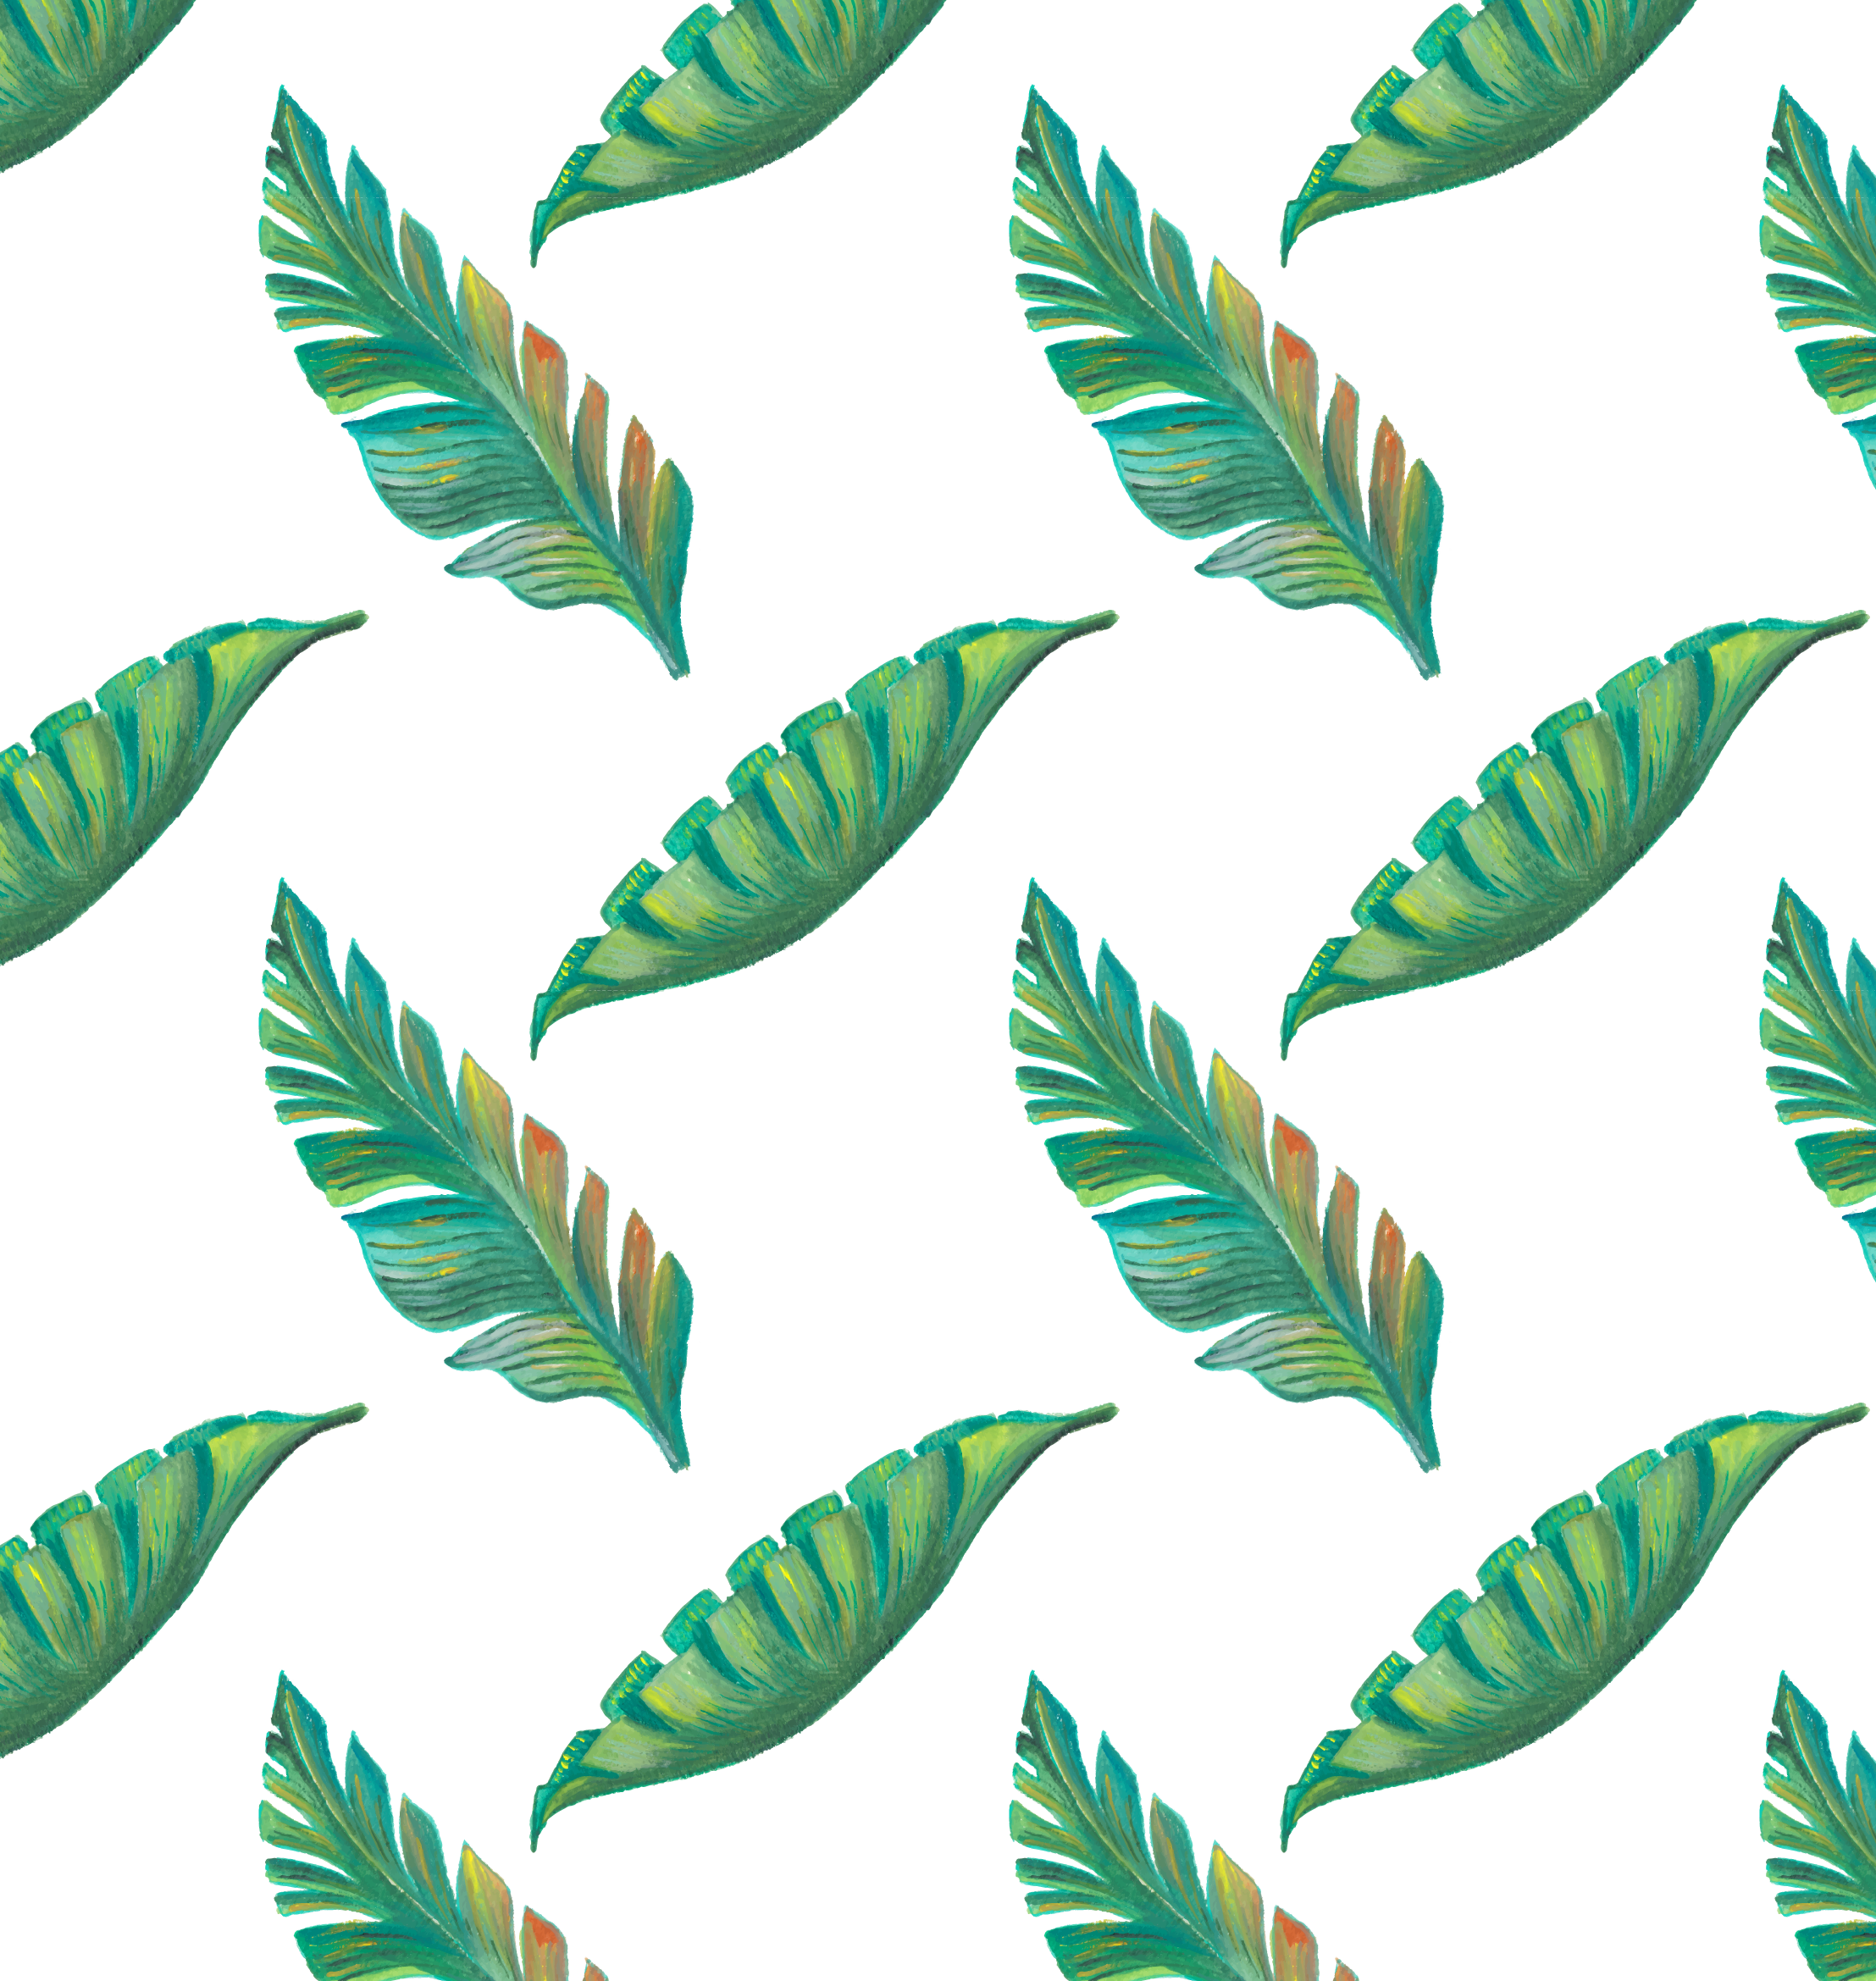 Tropical leaf pattern png. Tropics drawing hand painted